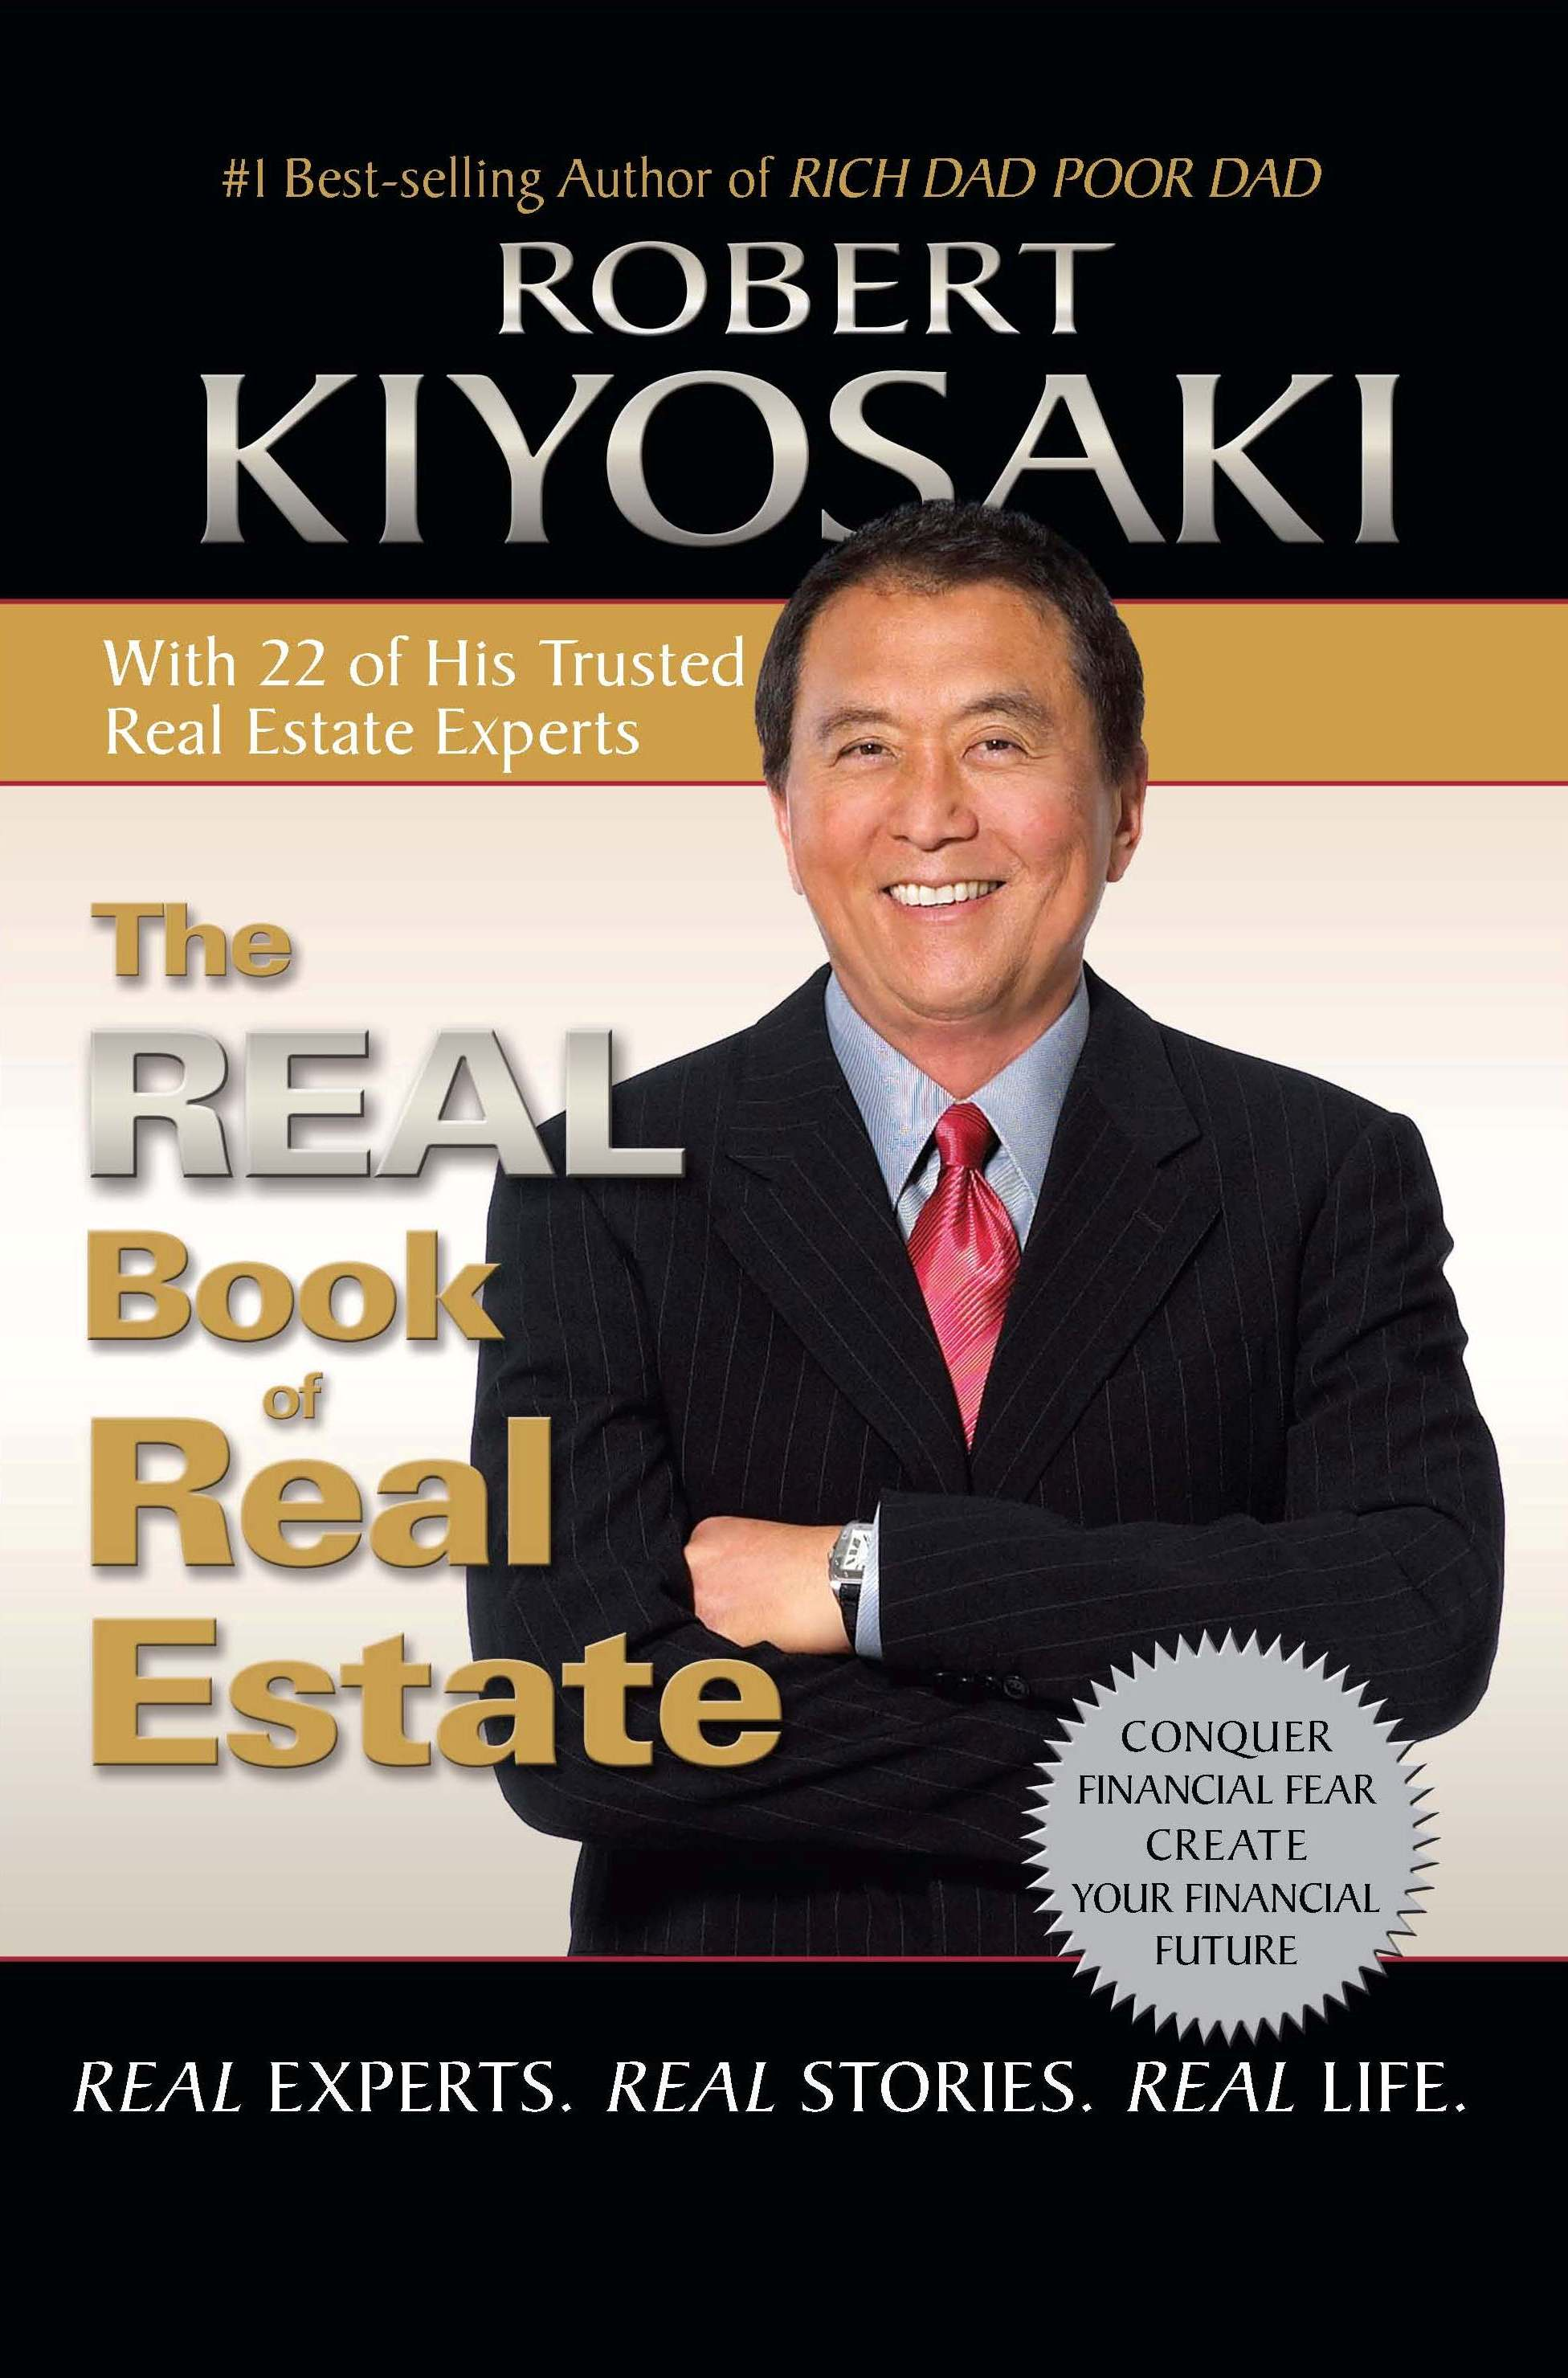 The Real Book of Real Estate by Robert Kiyosaki